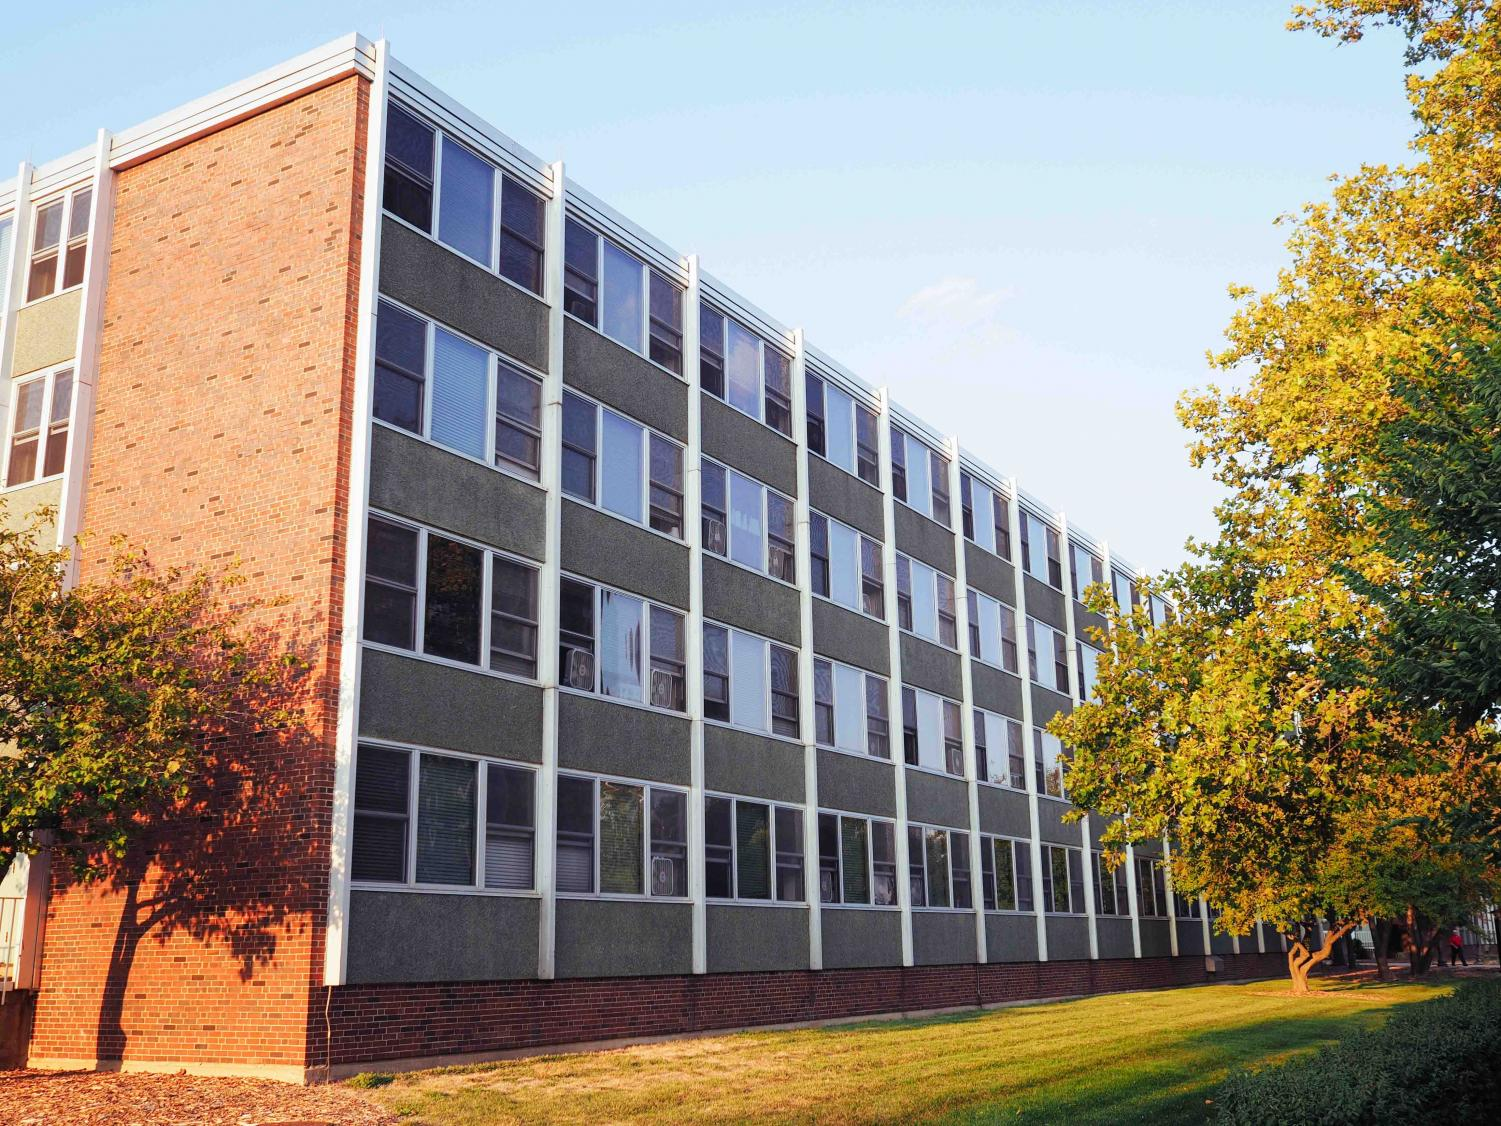 Pennsylvania Avenue Residence hall located on the south side of campus is a popular dorm for freshmen.